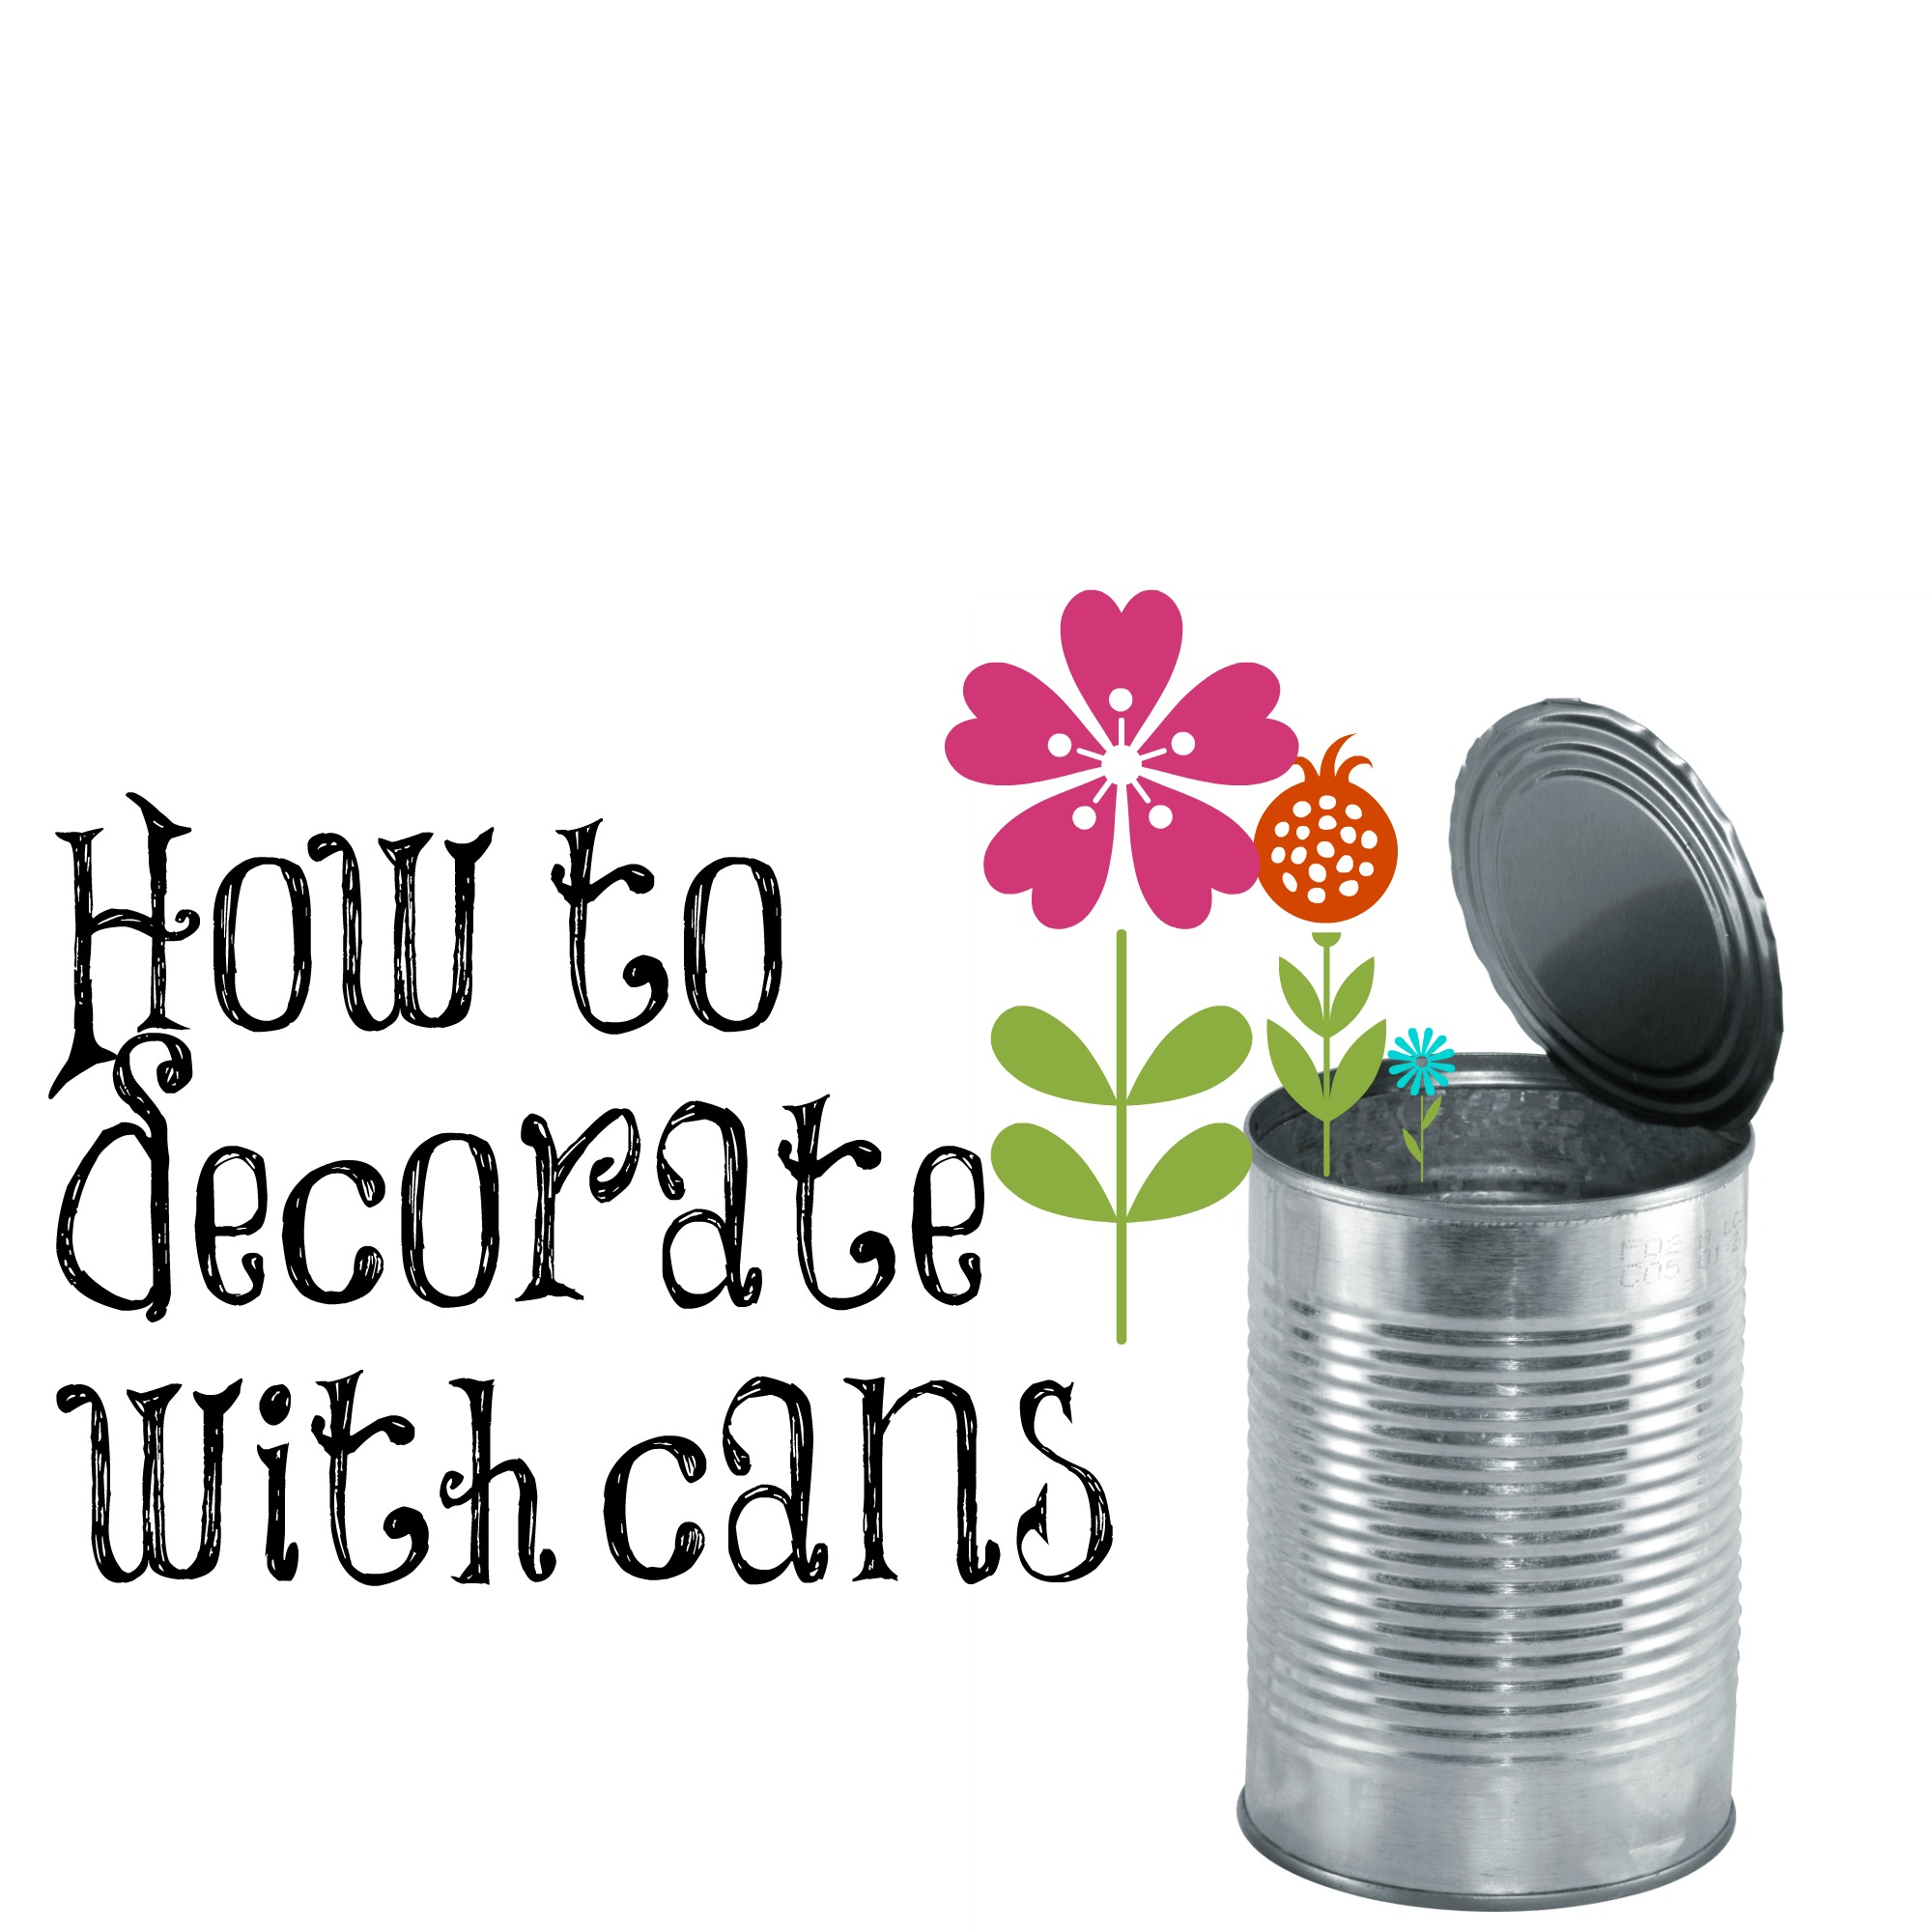 How to decorate with cans